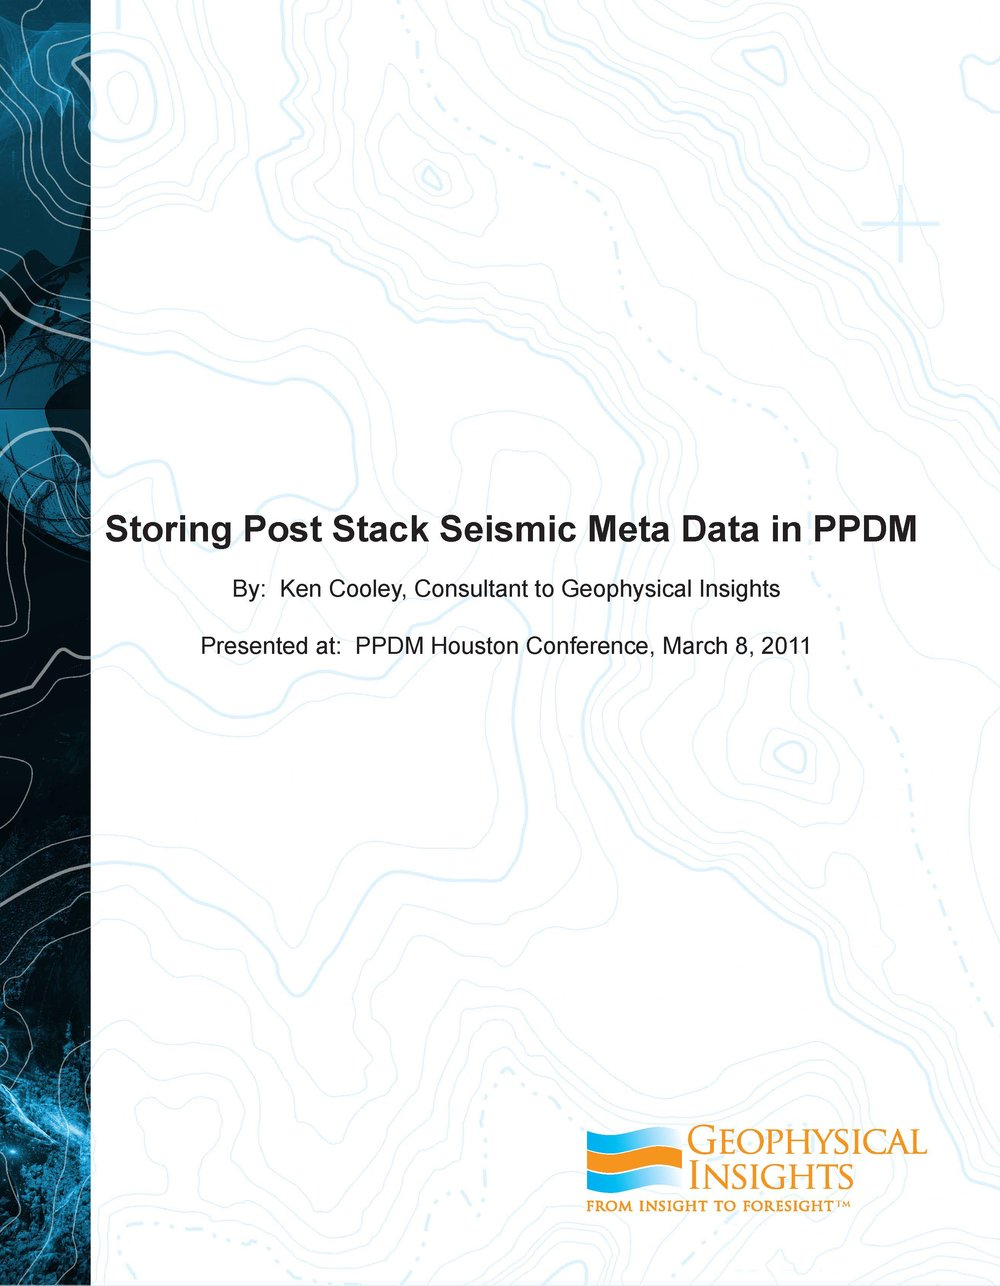 PPDM allows Survey, Geometry, Trace, and storage information for Post Stack trace data (3D Seismic Attribute volumes and 2D) for data population.